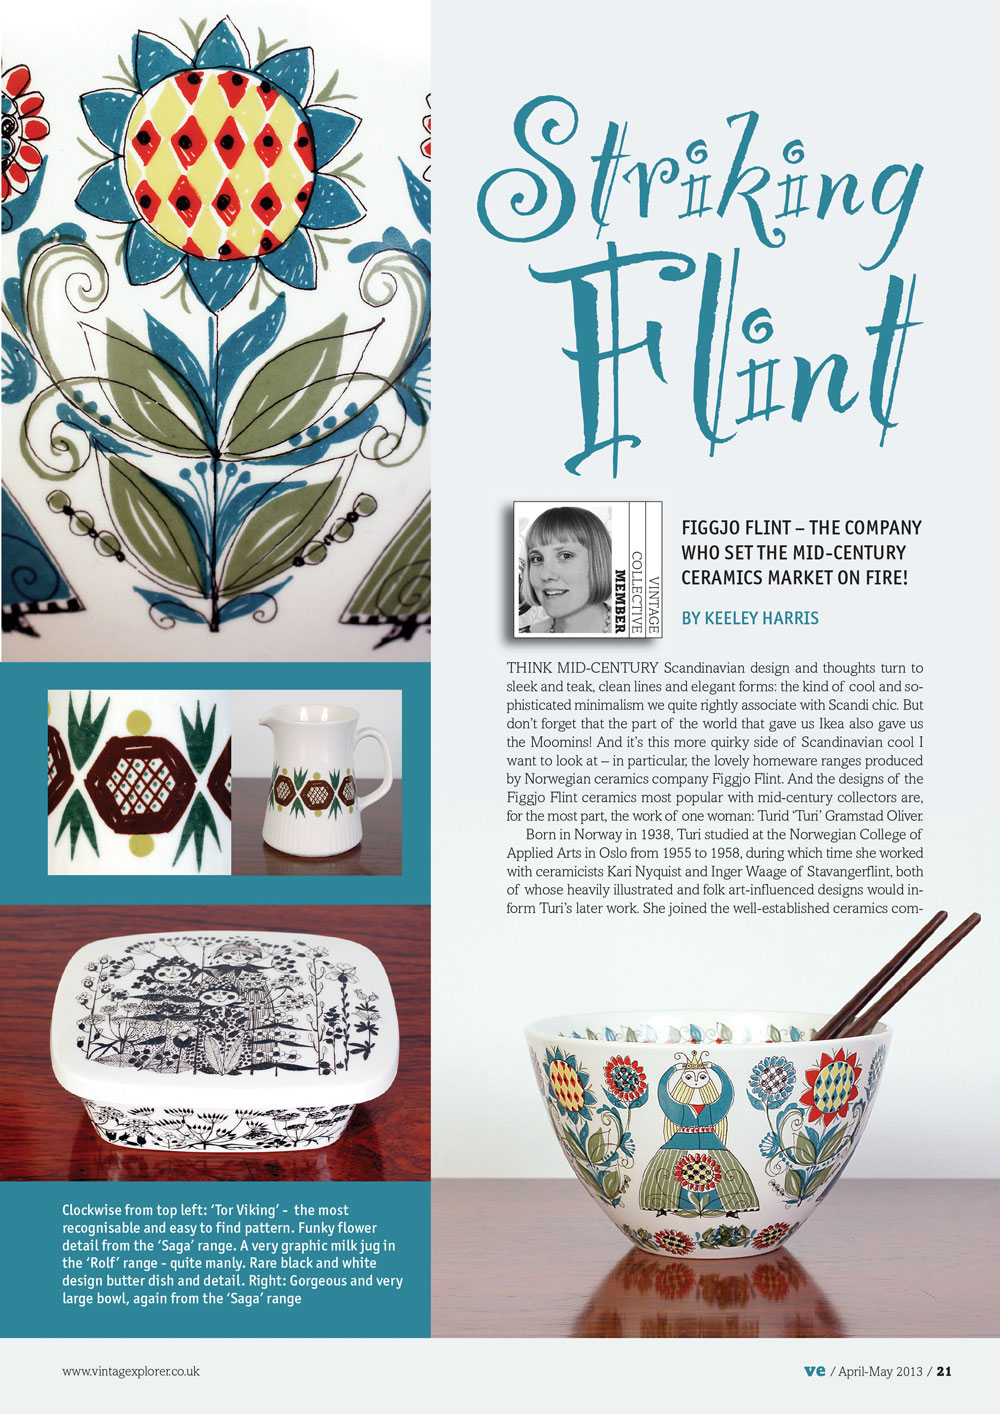 ISSUE 9 - APRIL/MAY 2013 - STRIKING FLINT Figgjo Flint - The company that set the Mid-century ceramics market on fire!